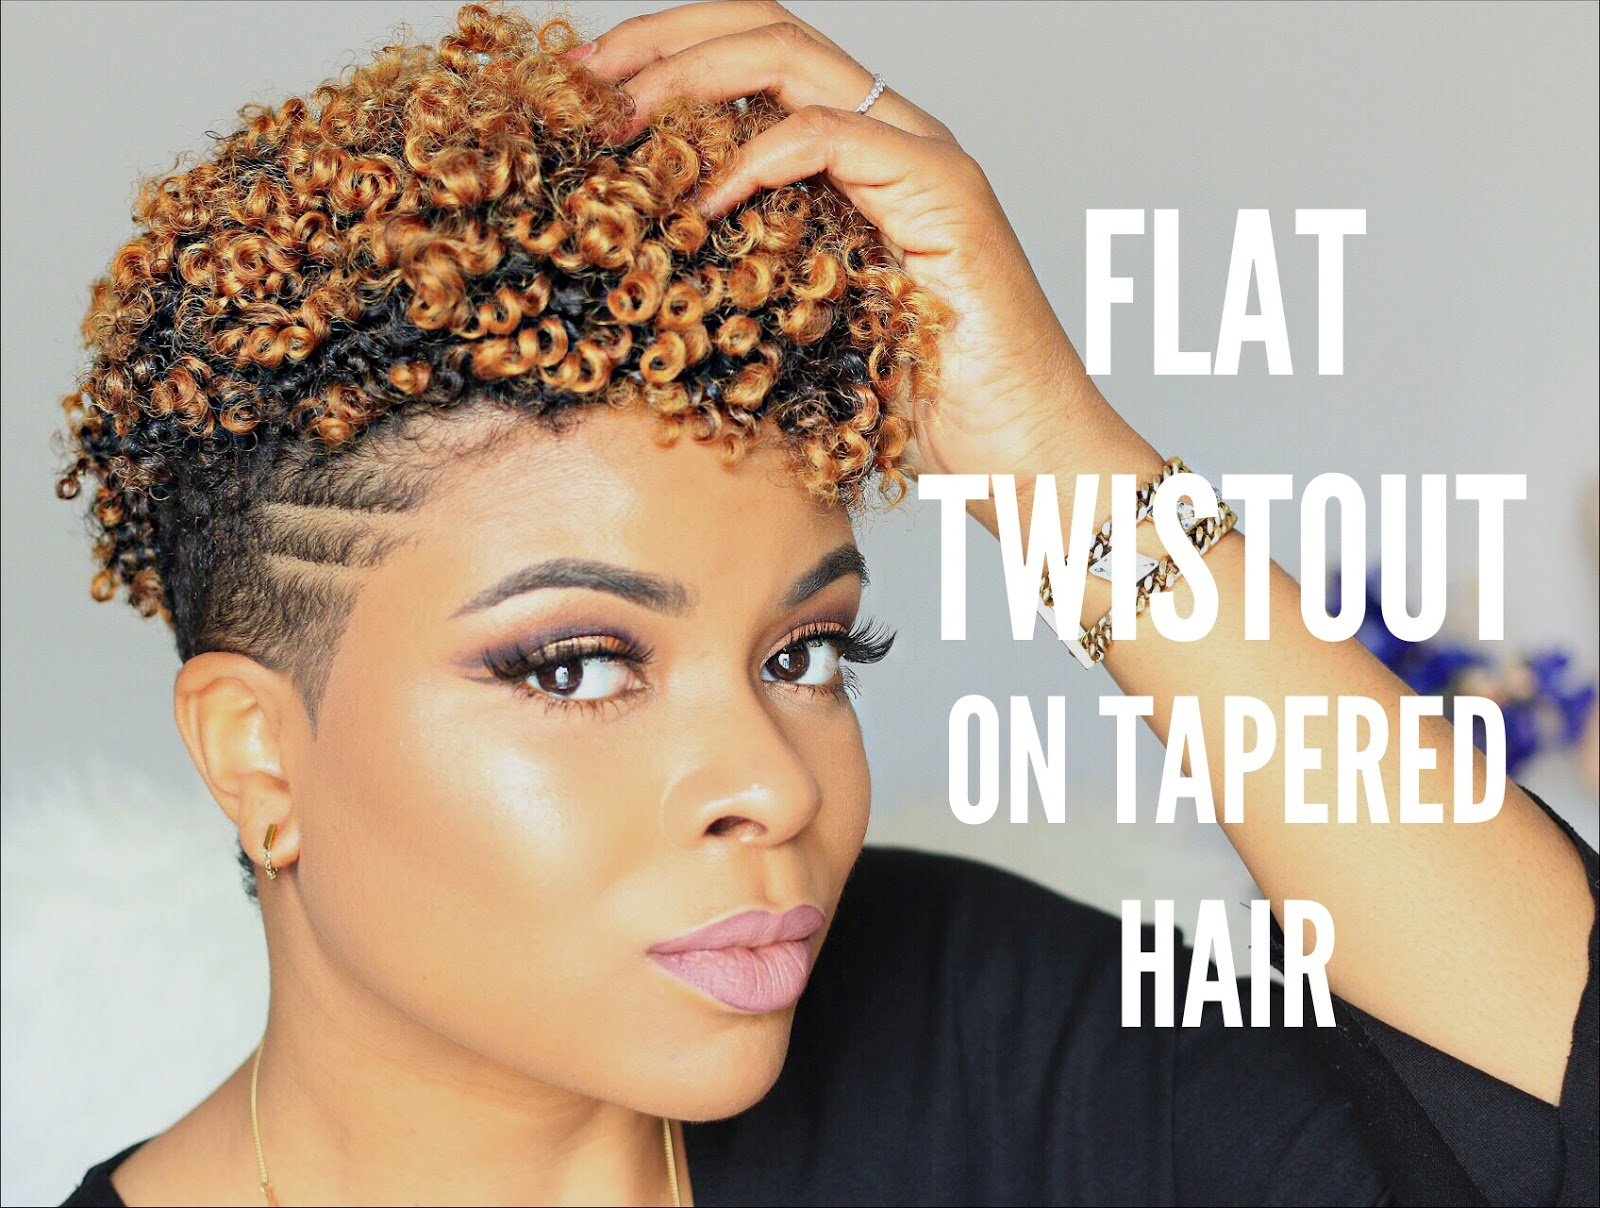 Natural Hair Rebel Hair Flat Twist Out On Tapered Cut